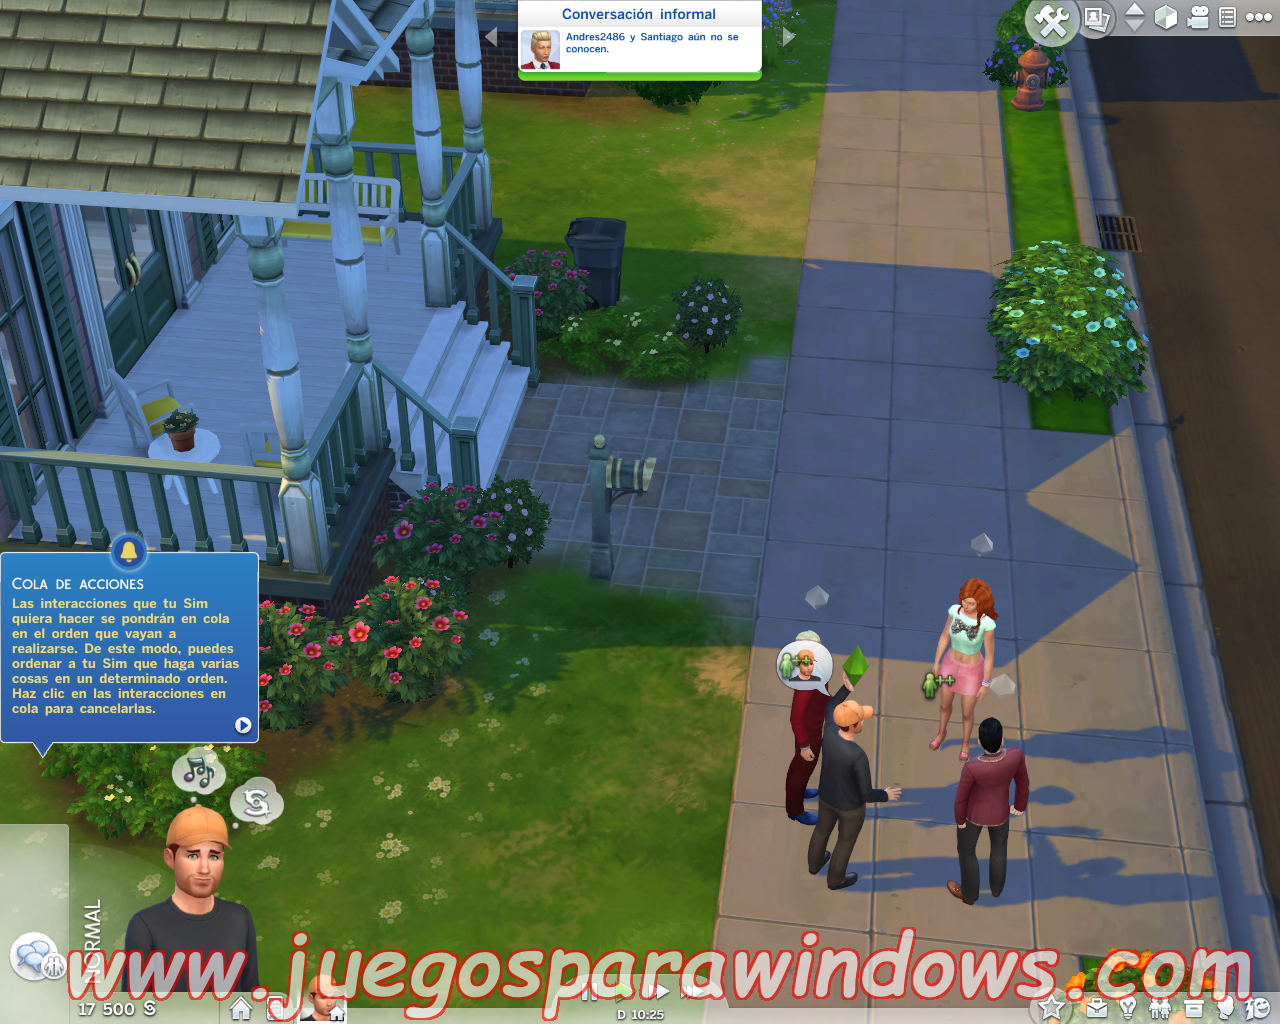 Los Sims 4 Digital Deluxe Edition ESPAÑOL PC Full + Update v1.4.83.1010 Incl DLC (RELOADED) 22